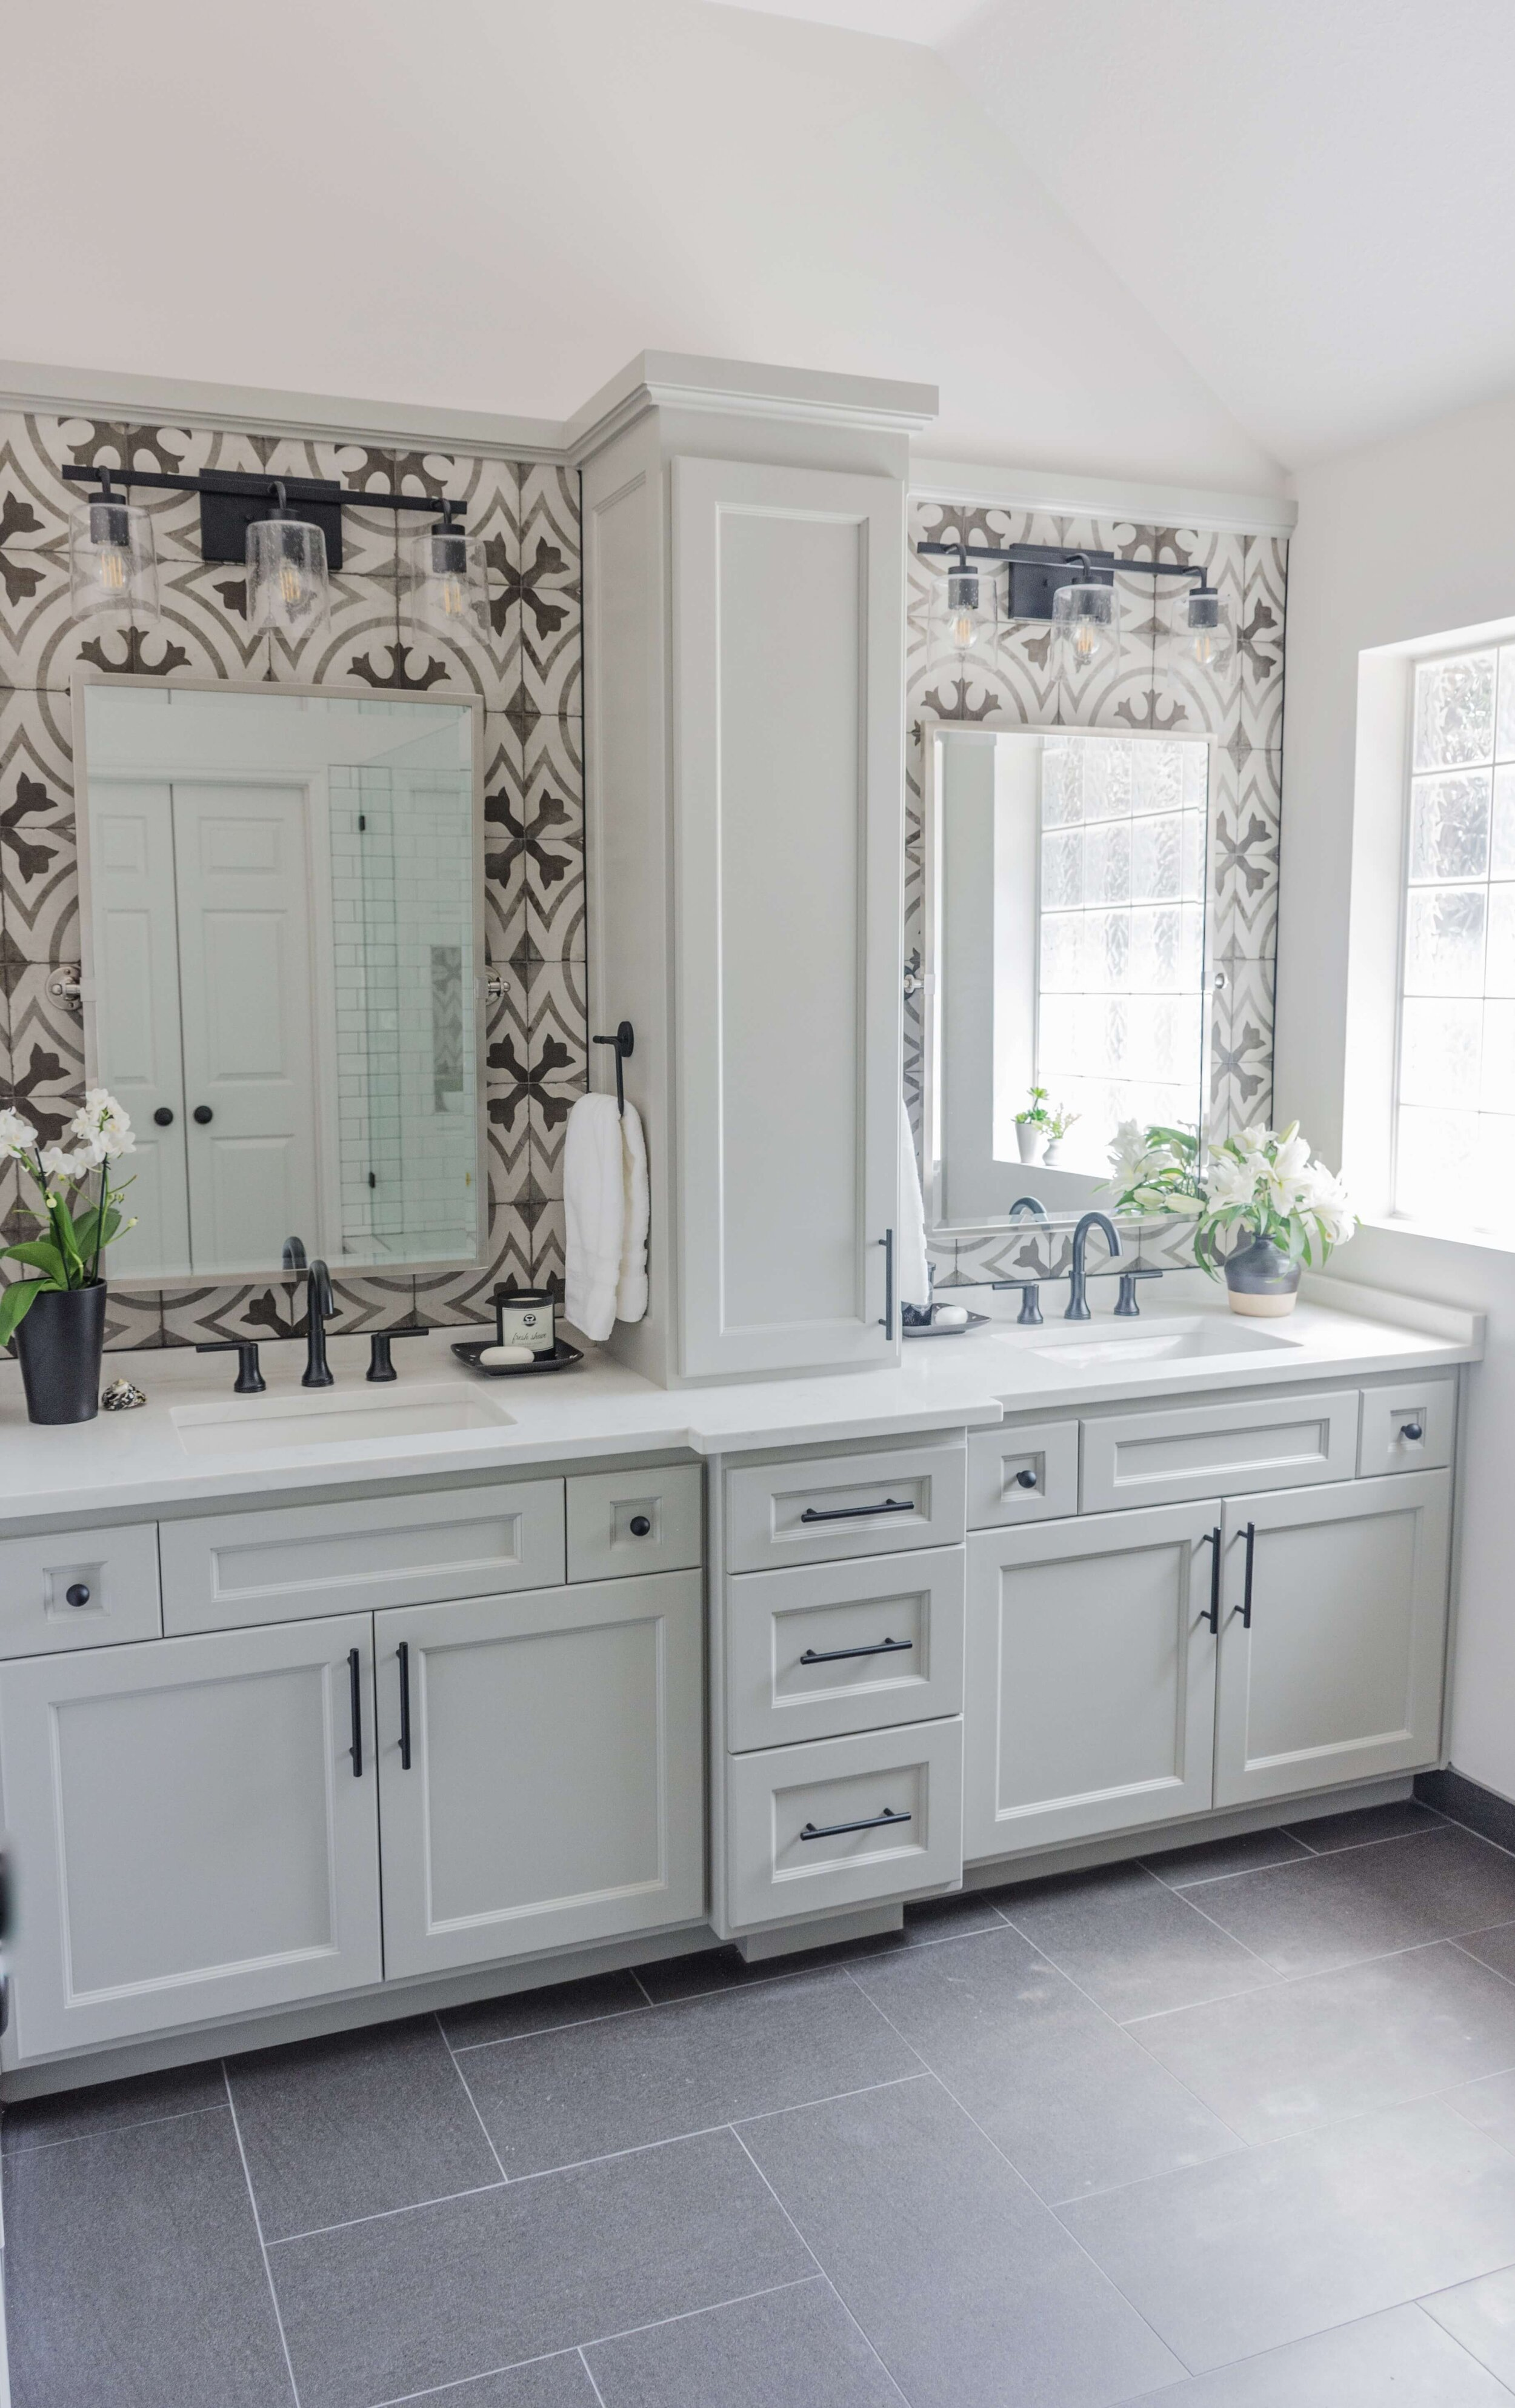 A Bathroom Remodel Q And A Where The Bathroom Looks Oh So Familiar Designed